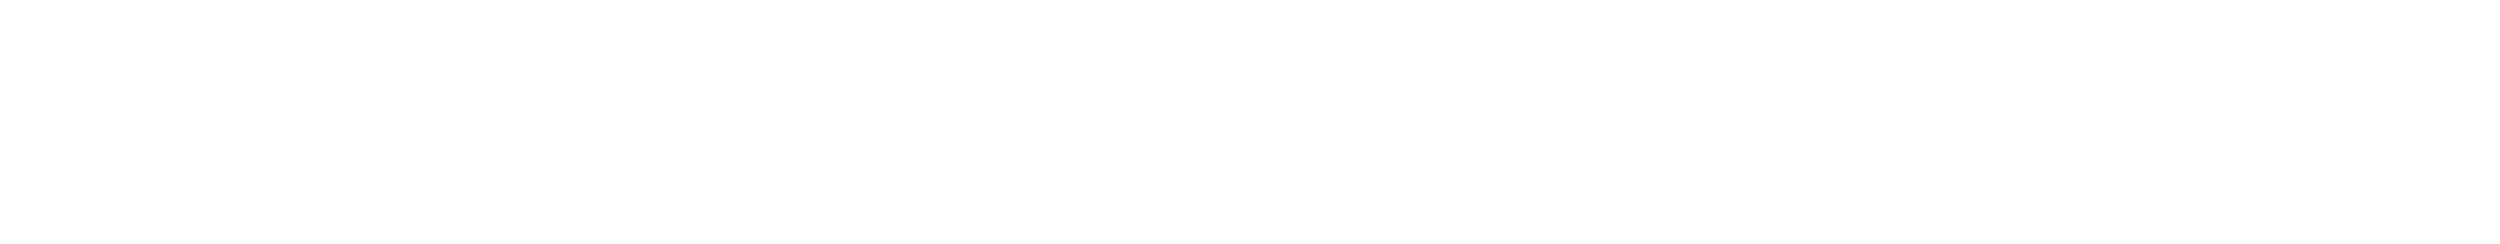 X_logo_wide.png